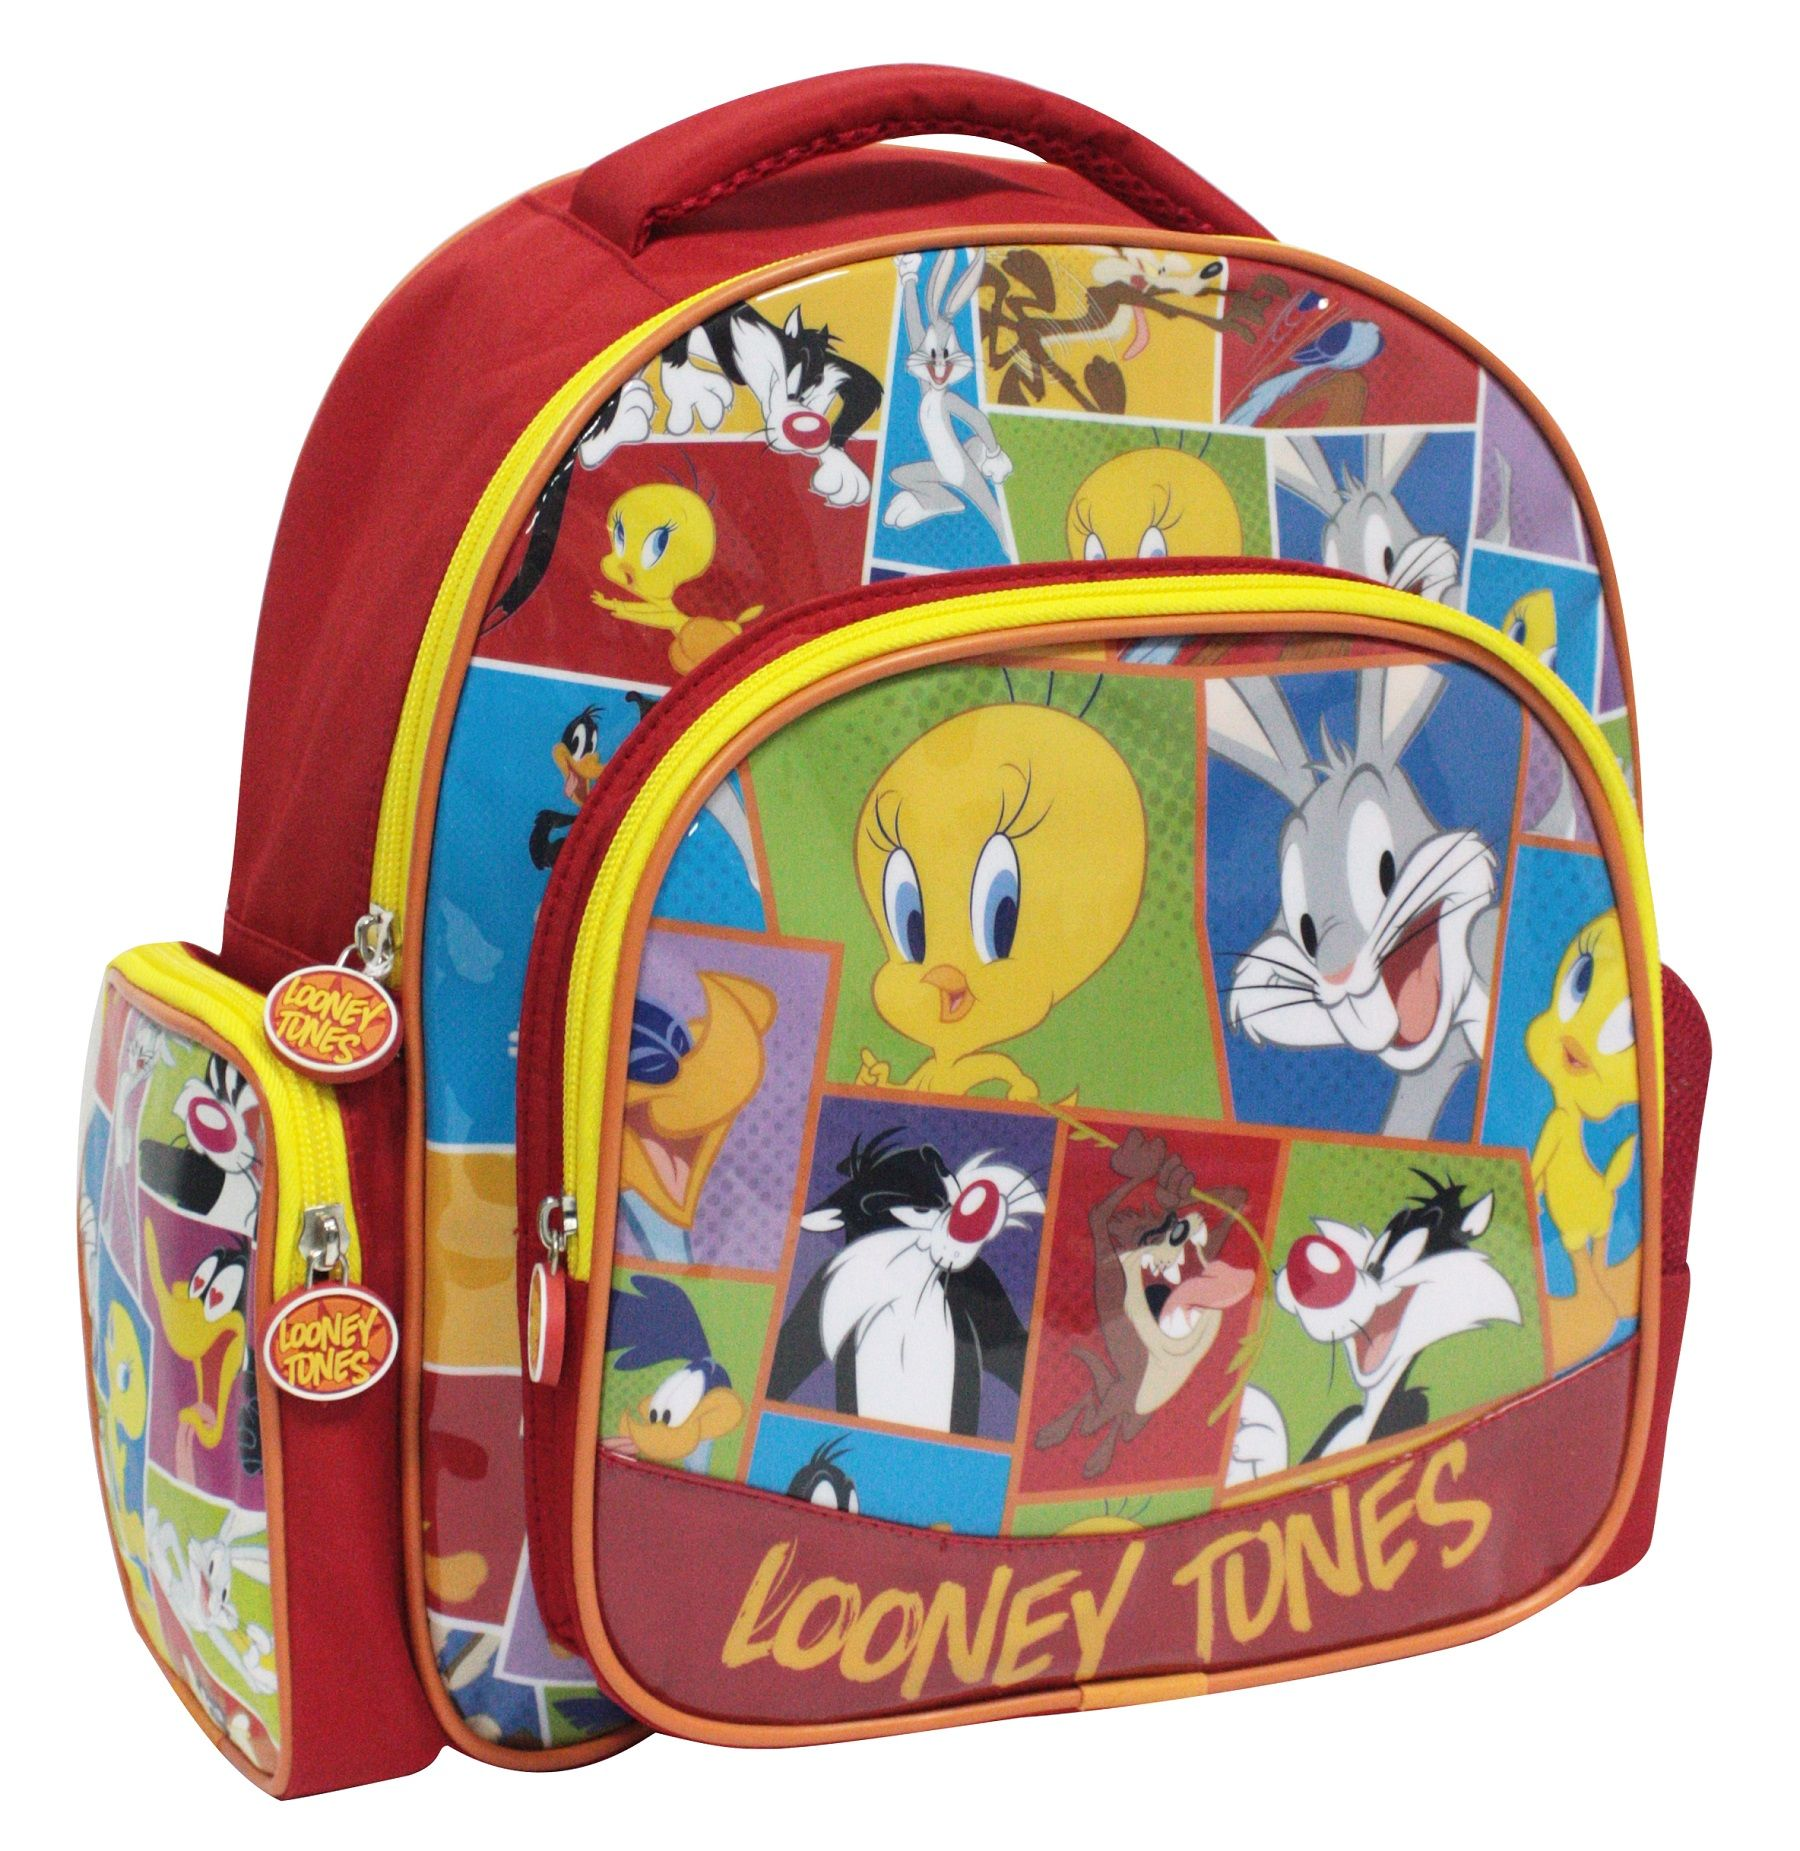 Looney Tunes Back to School backpack Greece